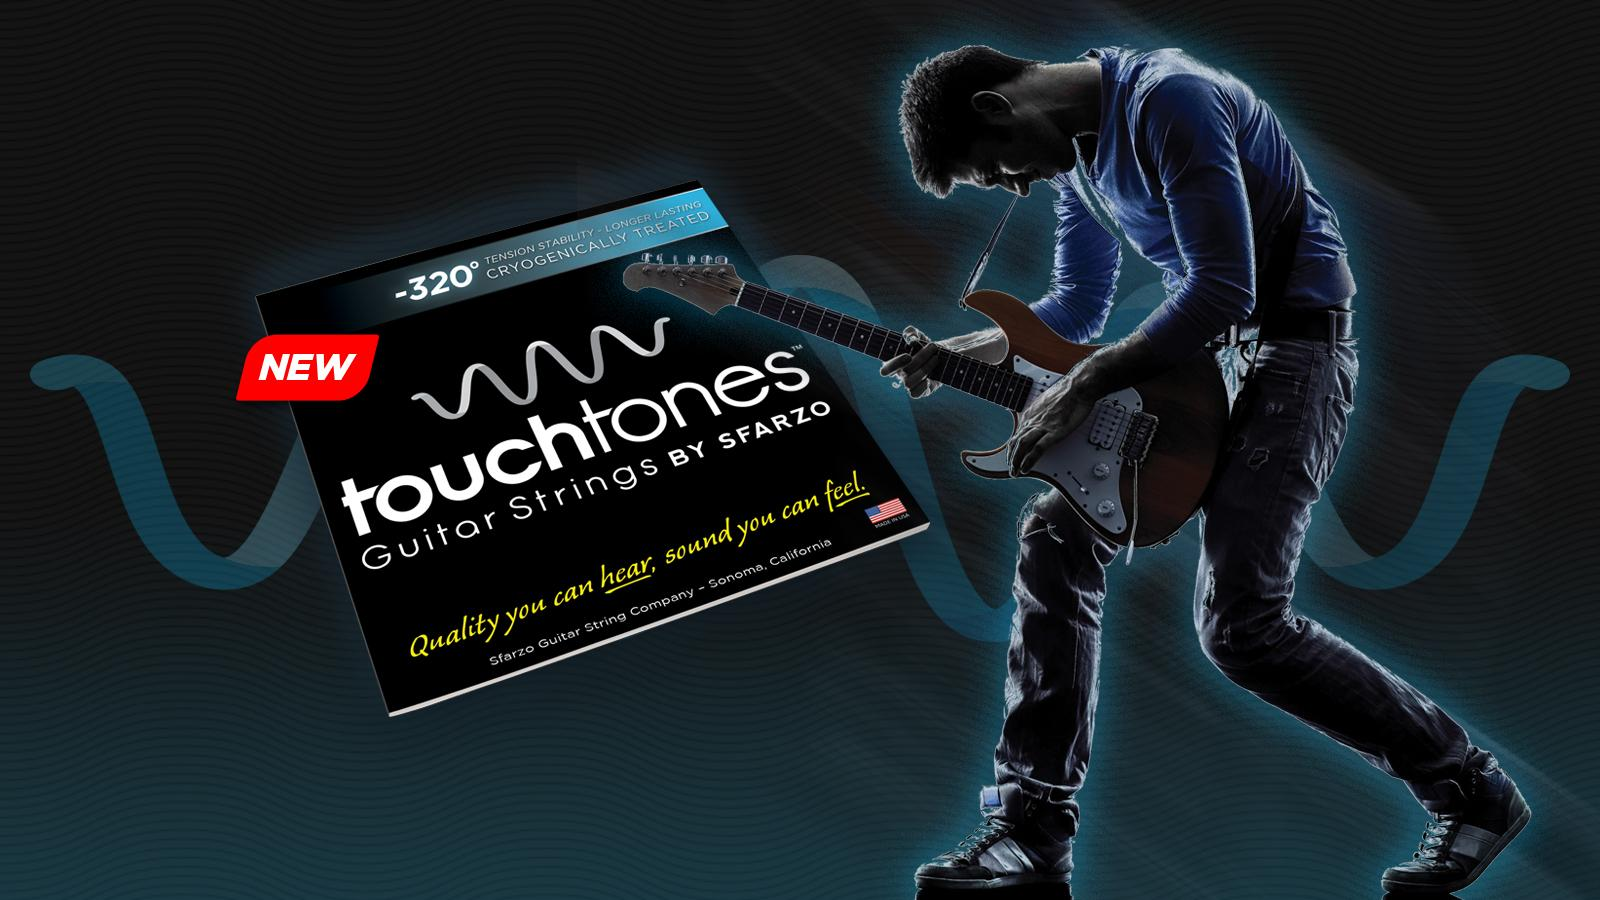 touchtones-ad-electrics-blank.jpg